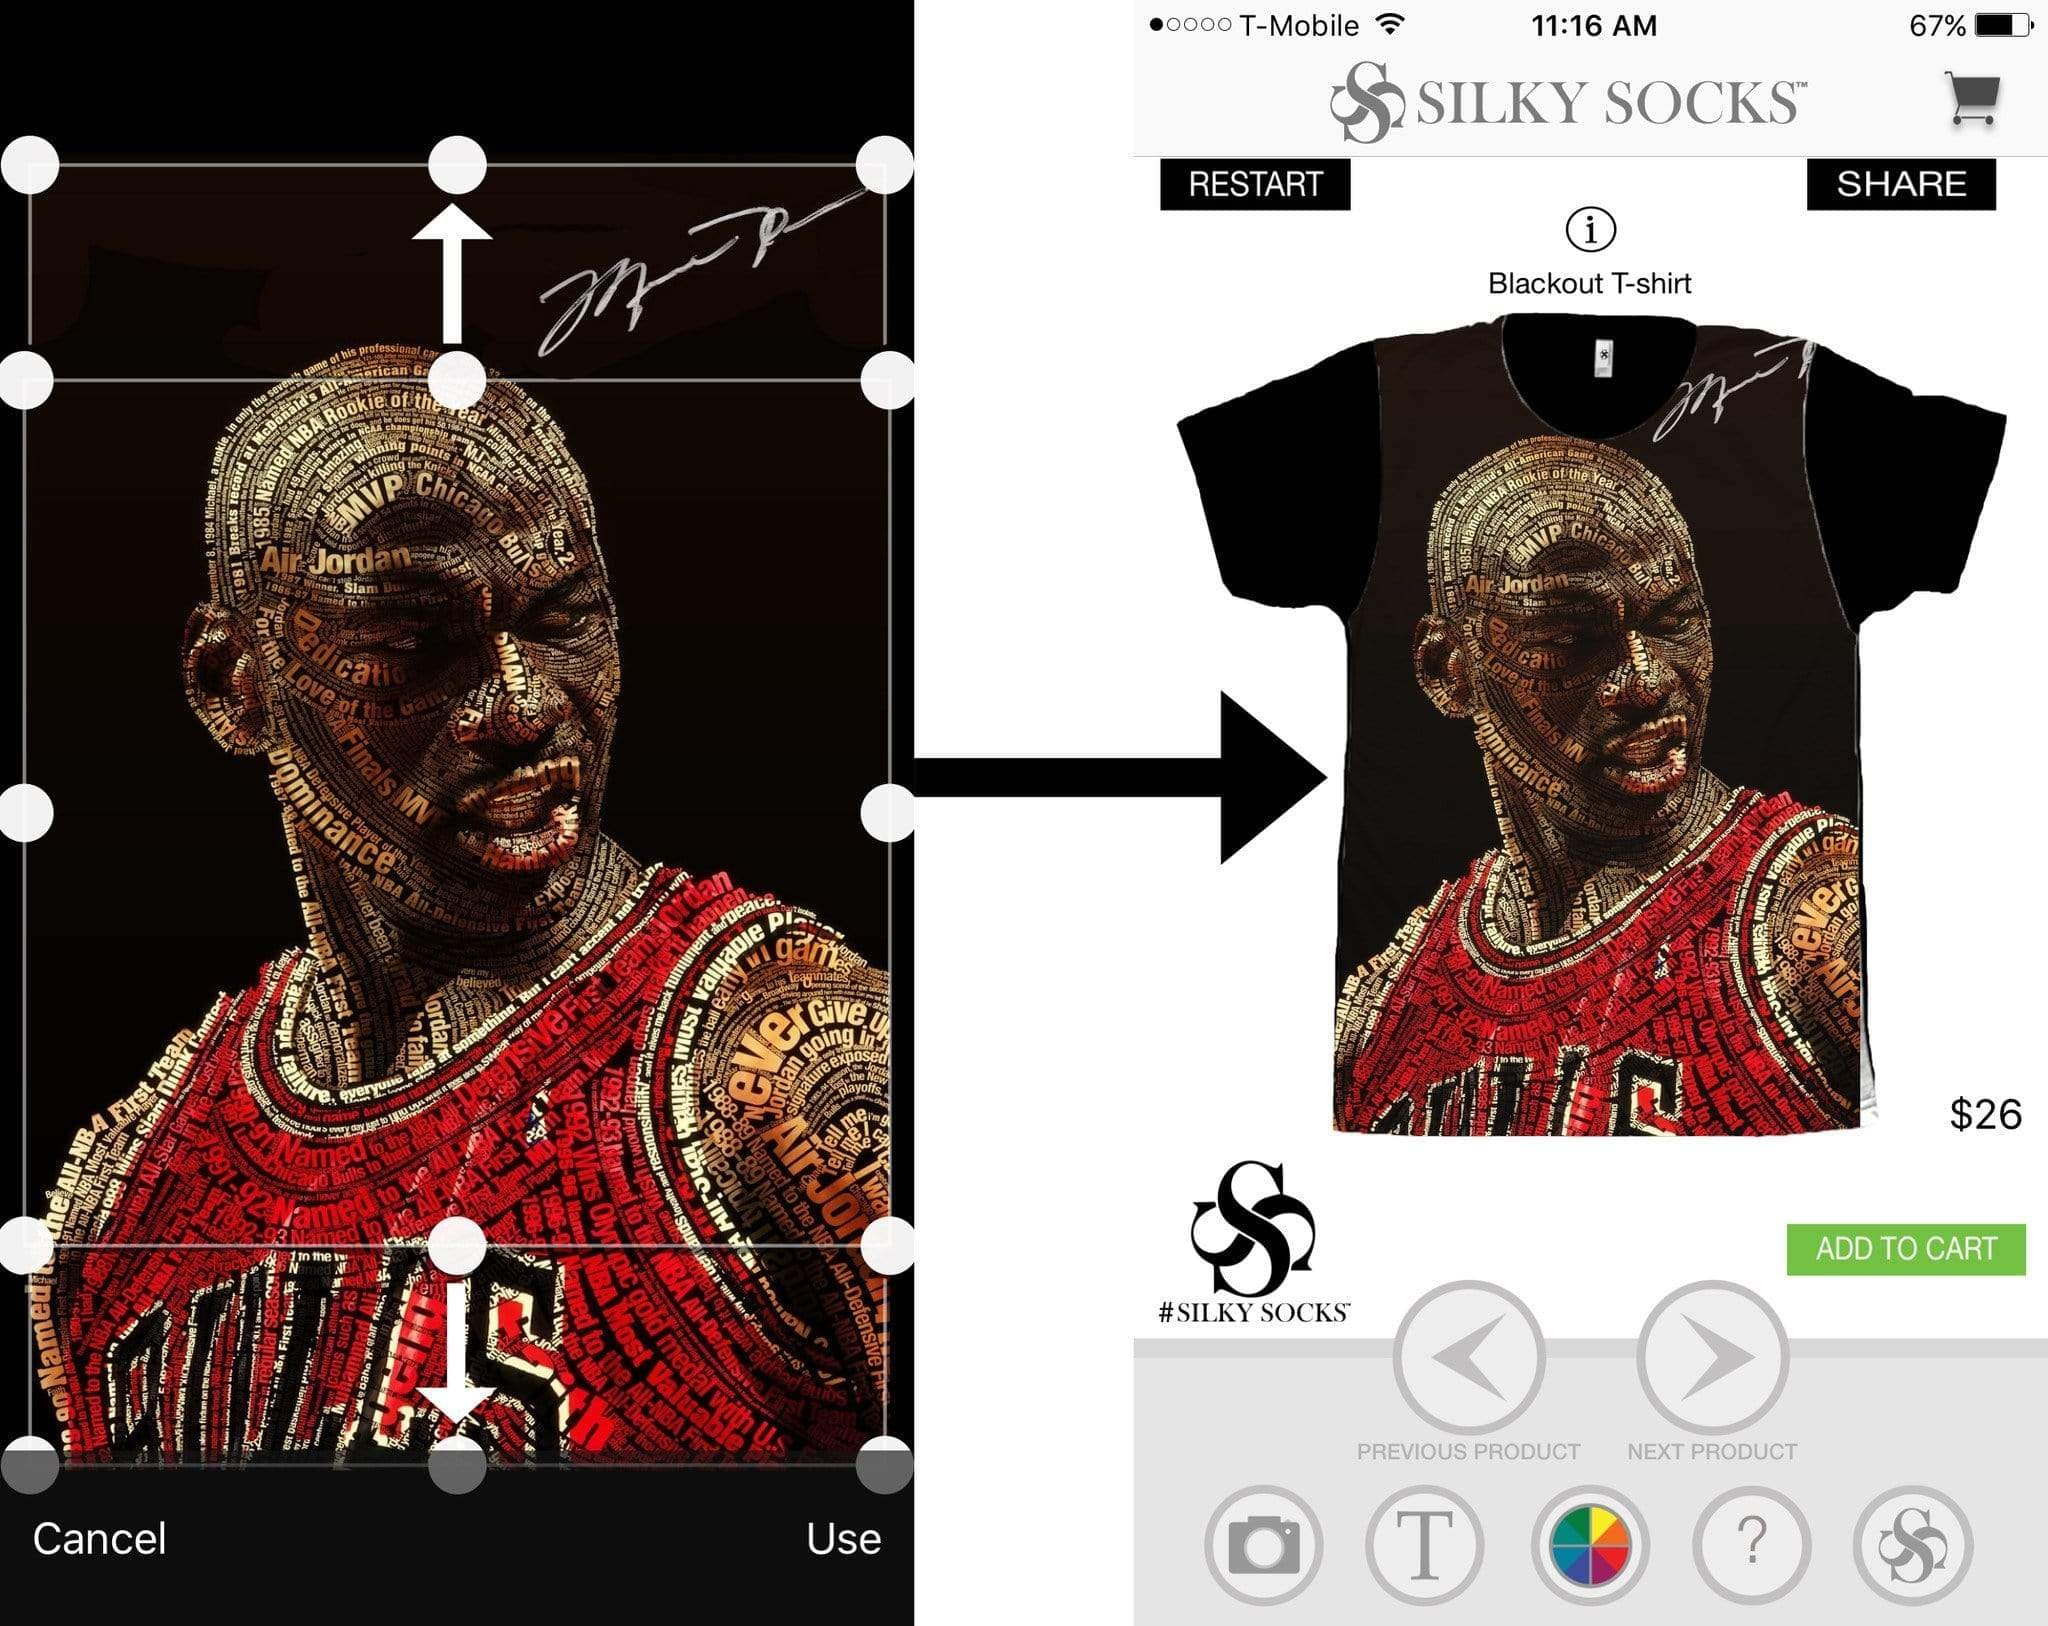 Create Your Own T-Shirt using the Silky Socks APP!